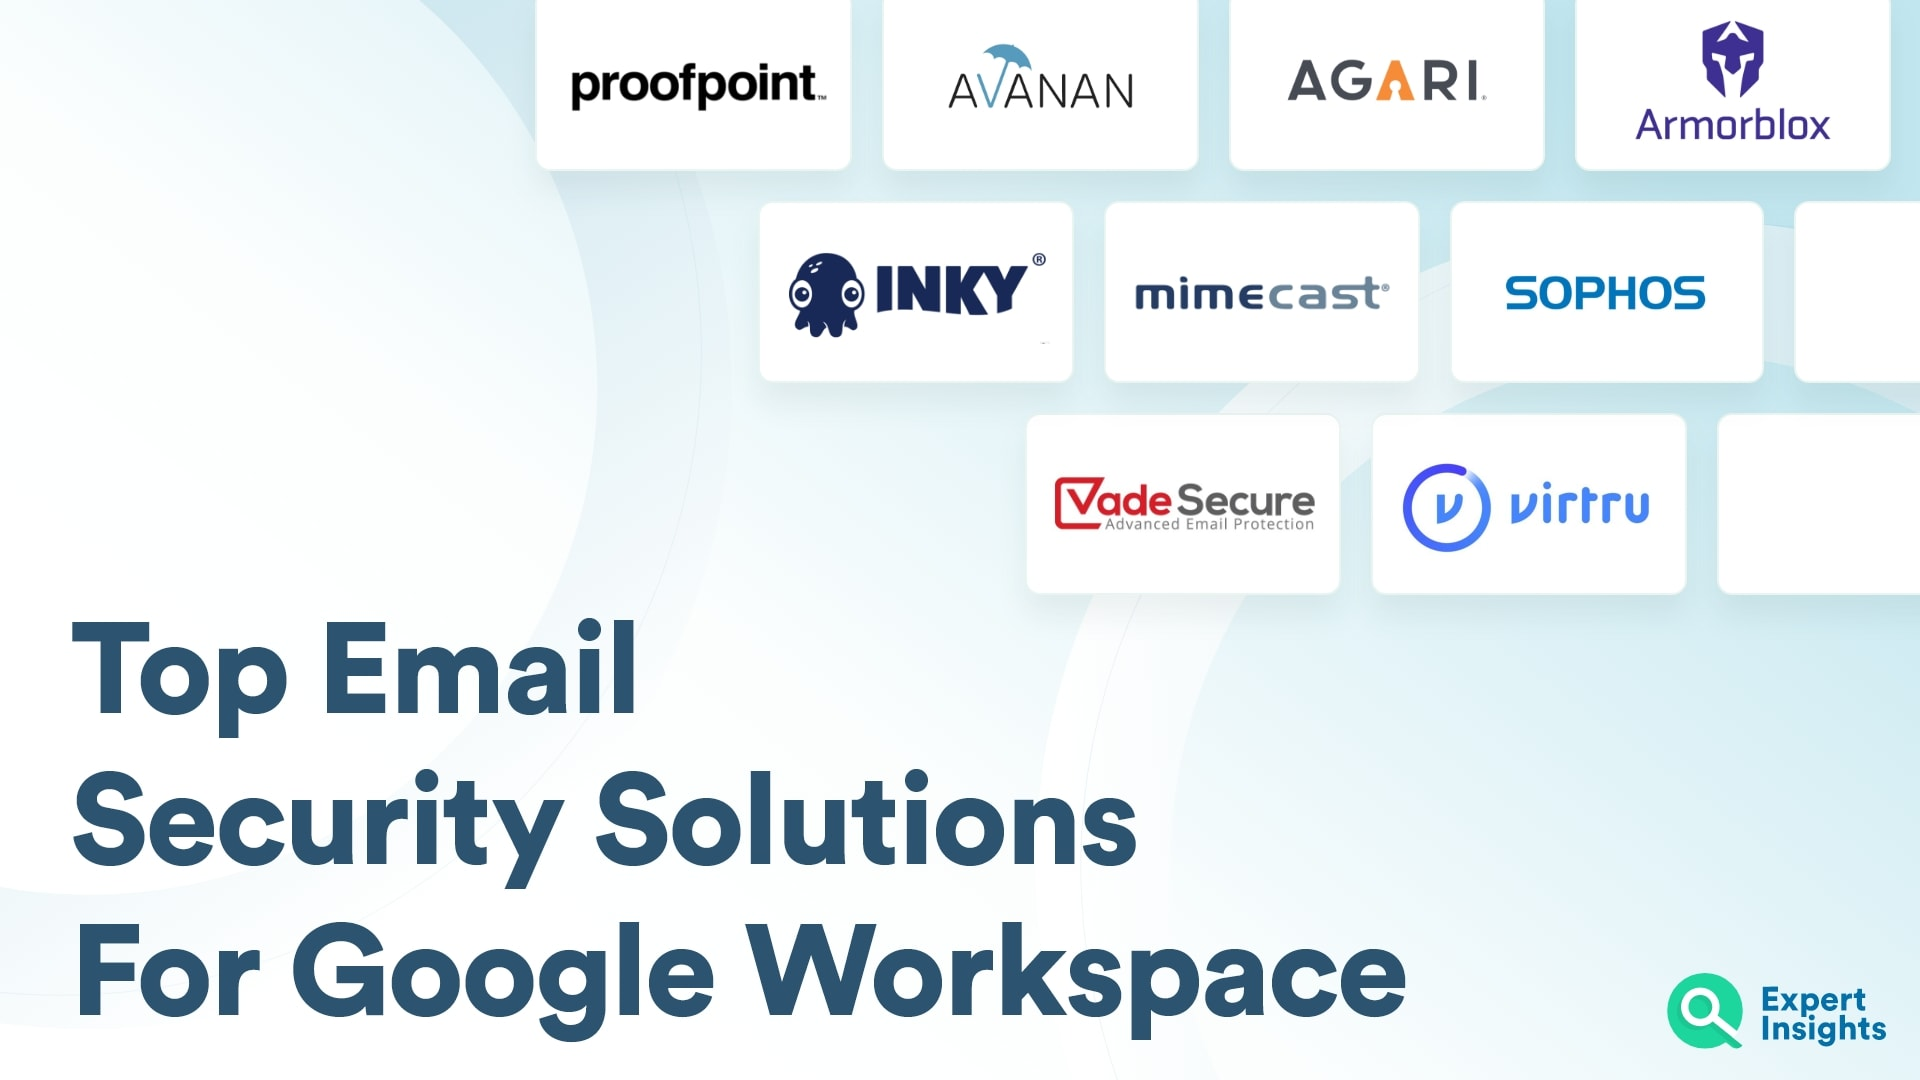 Top Email Security Solutions For Google Workspace - Expert Insights